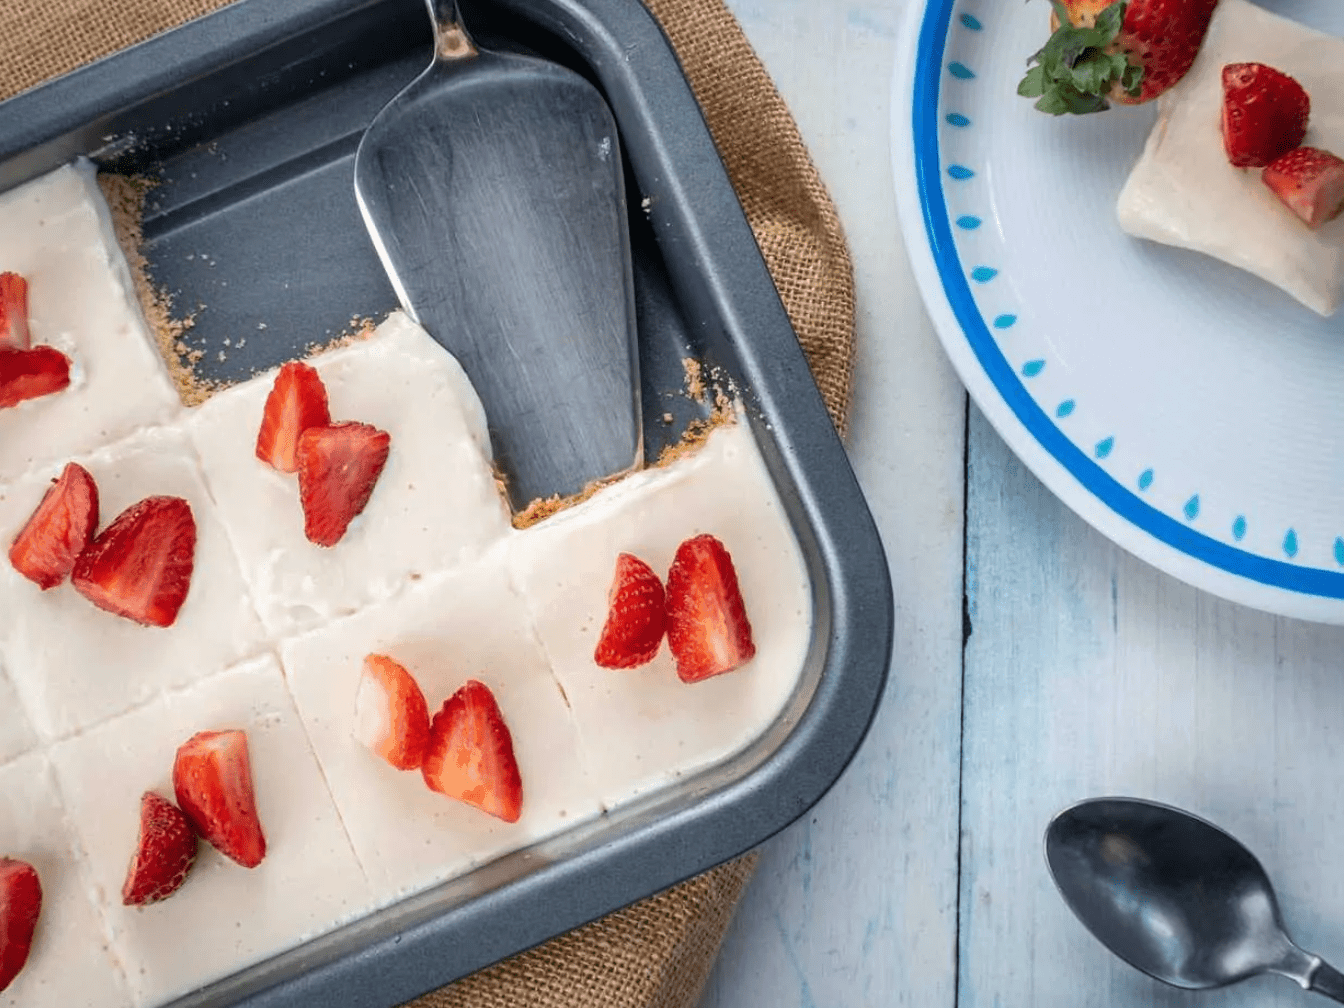 Strawberry Cream Pie Squares are Keto Friendly Desserts